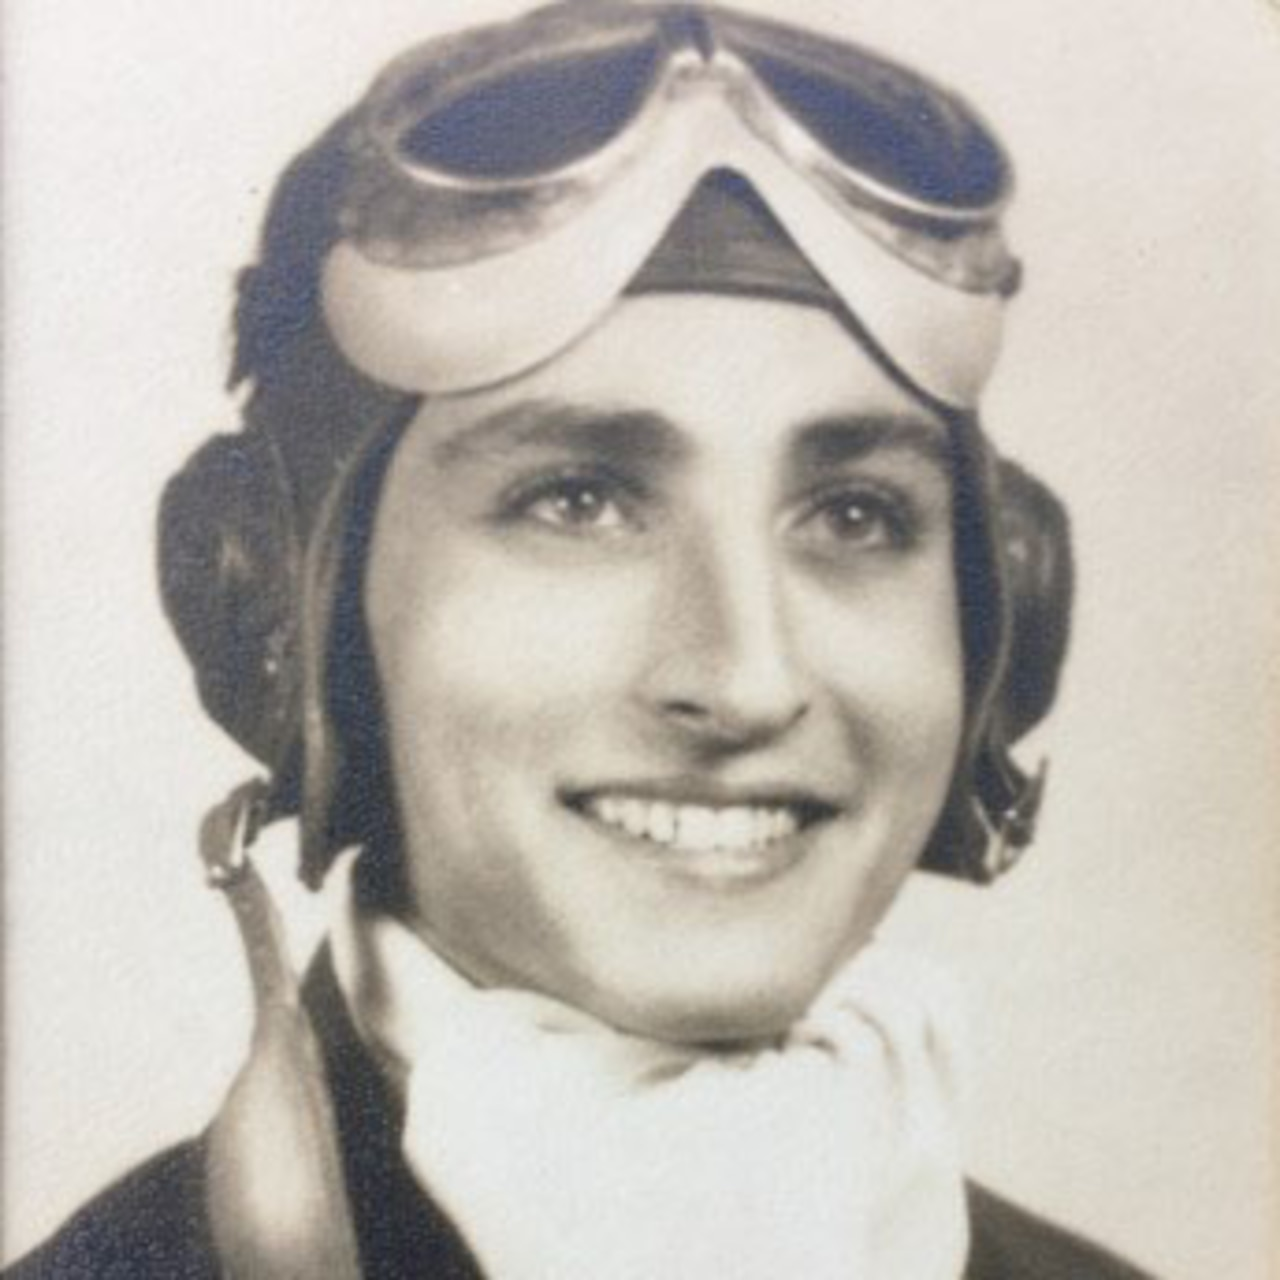 An old photo shows a young man with a broad smile dressed in an old-fashioned pilot's uniform and goggles.